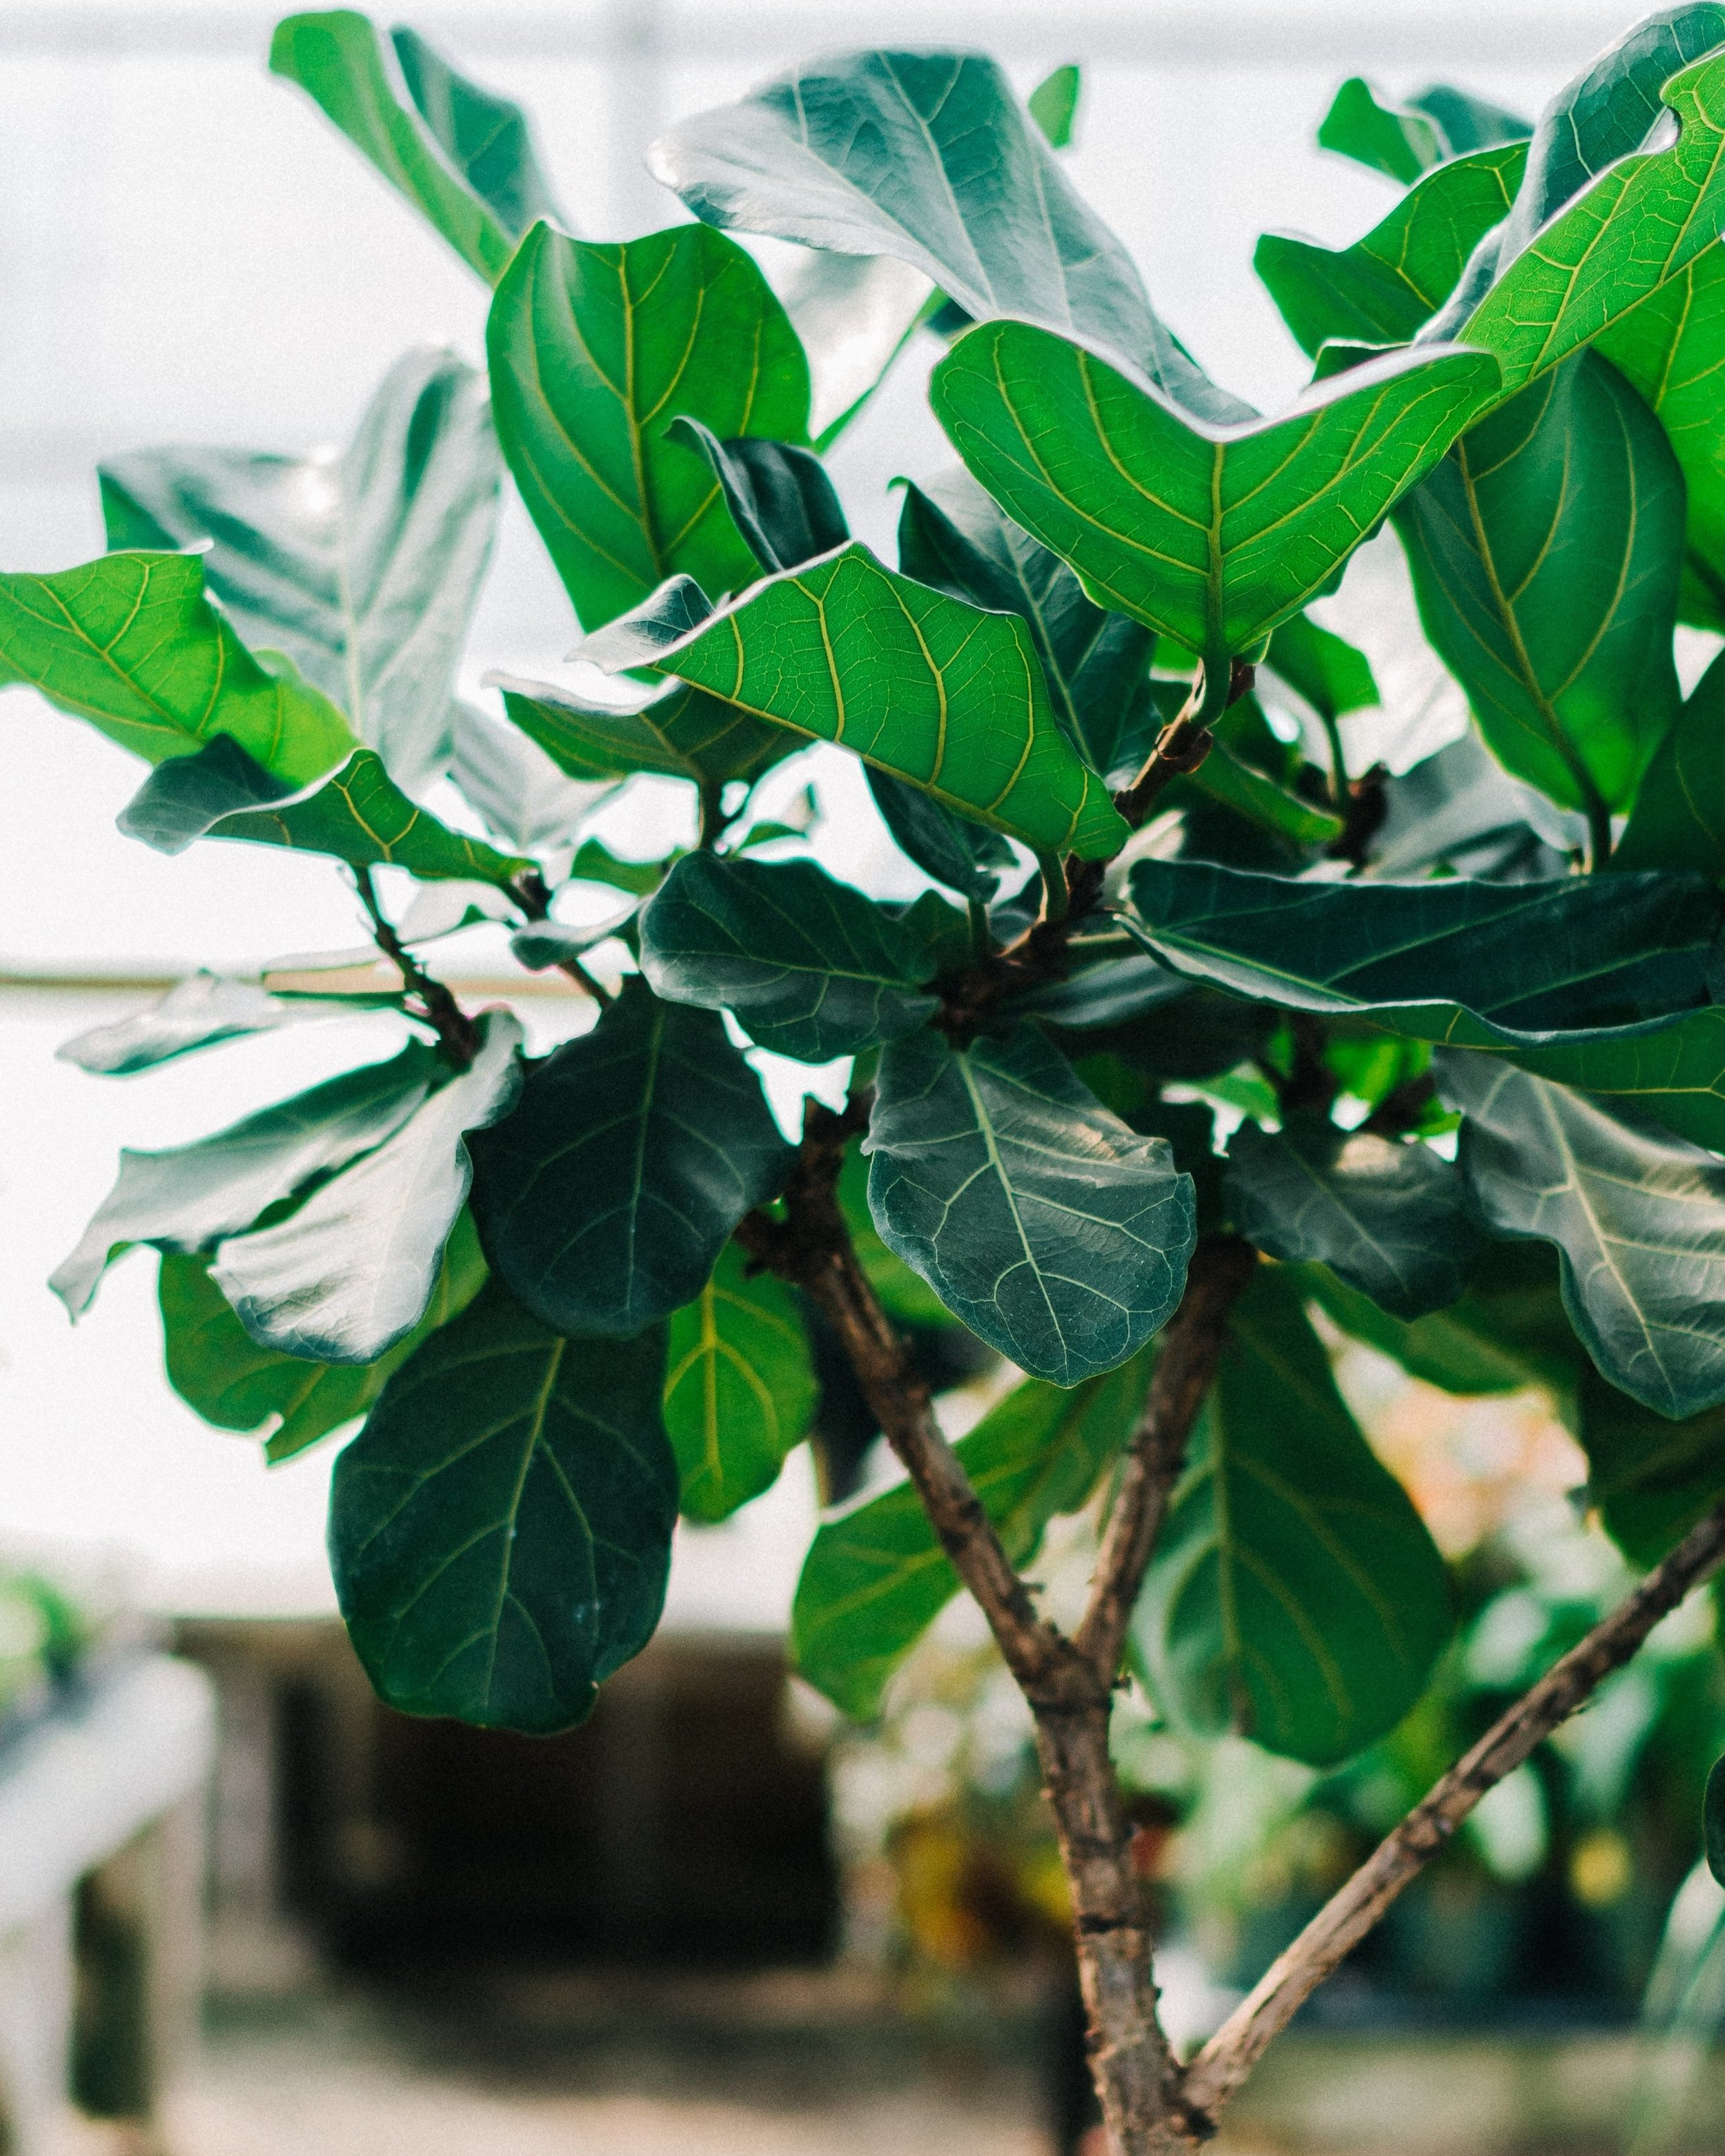 Maintenance - Let us be the experts. We offer weekly maintenance for your plant babies with a 100% replacement guarantee. We'll make sure your plants always look and feel their very best.